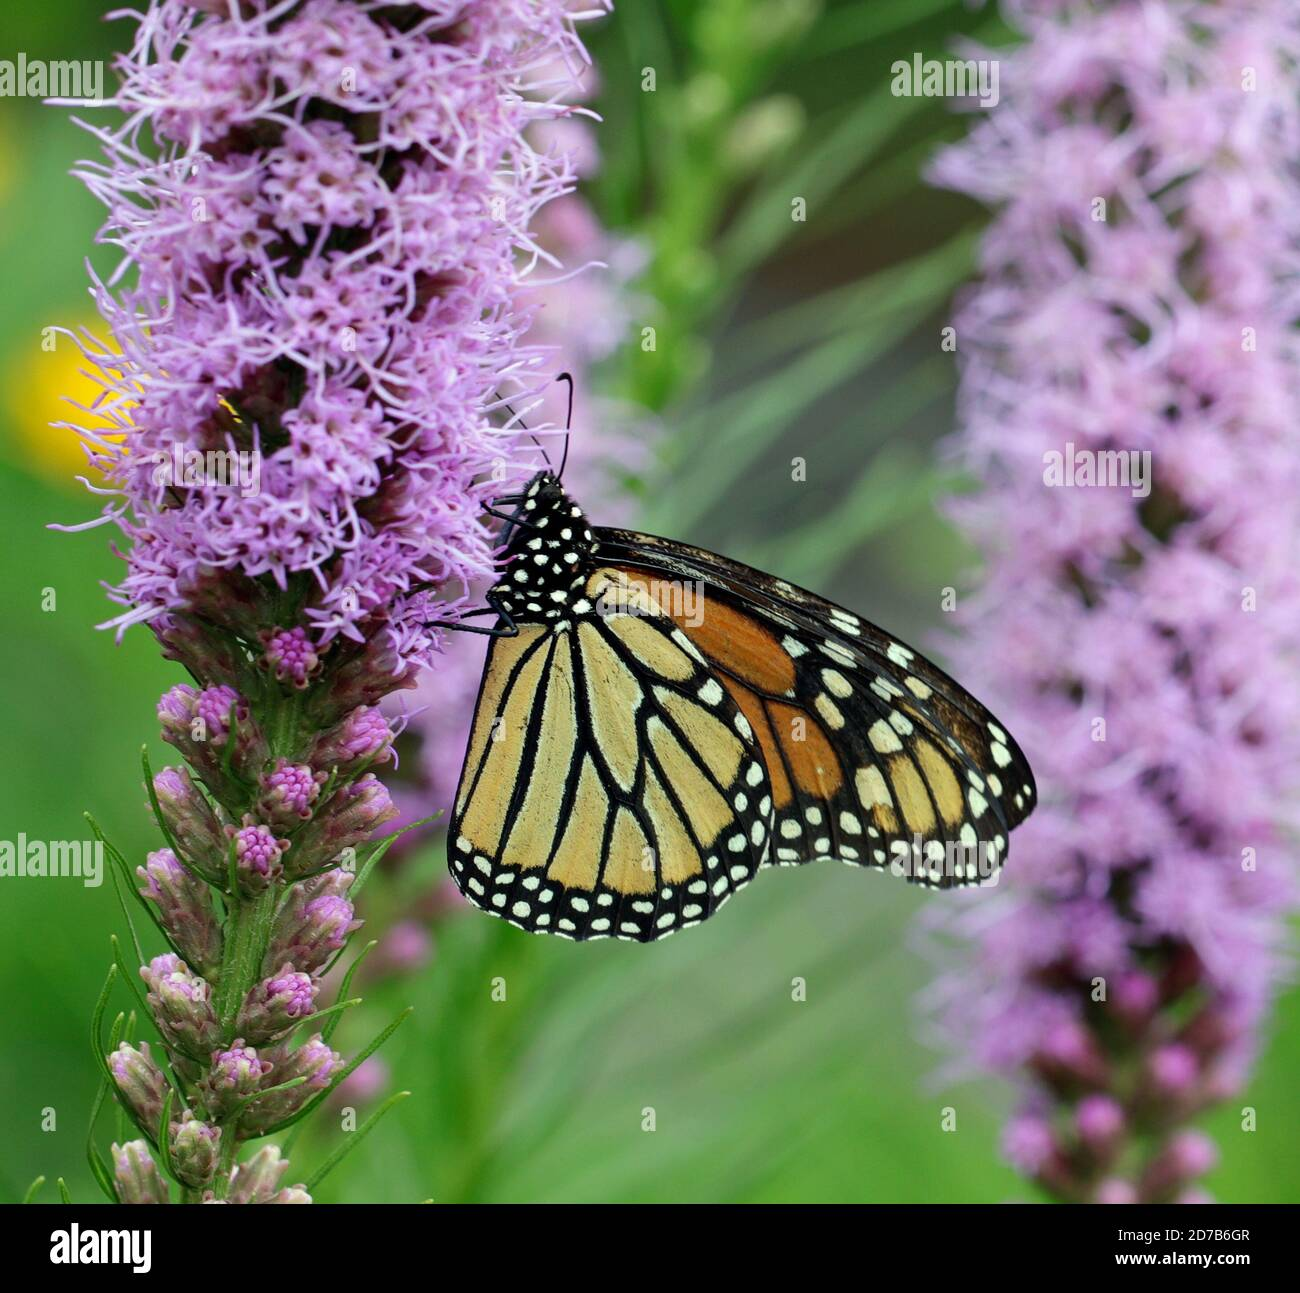 A close-up of a Monarch butterfly (Danaus plexippus), also known as the milkweed butterfly, feeding in a garden on blazing star (Liatris spicata) Stock Photo